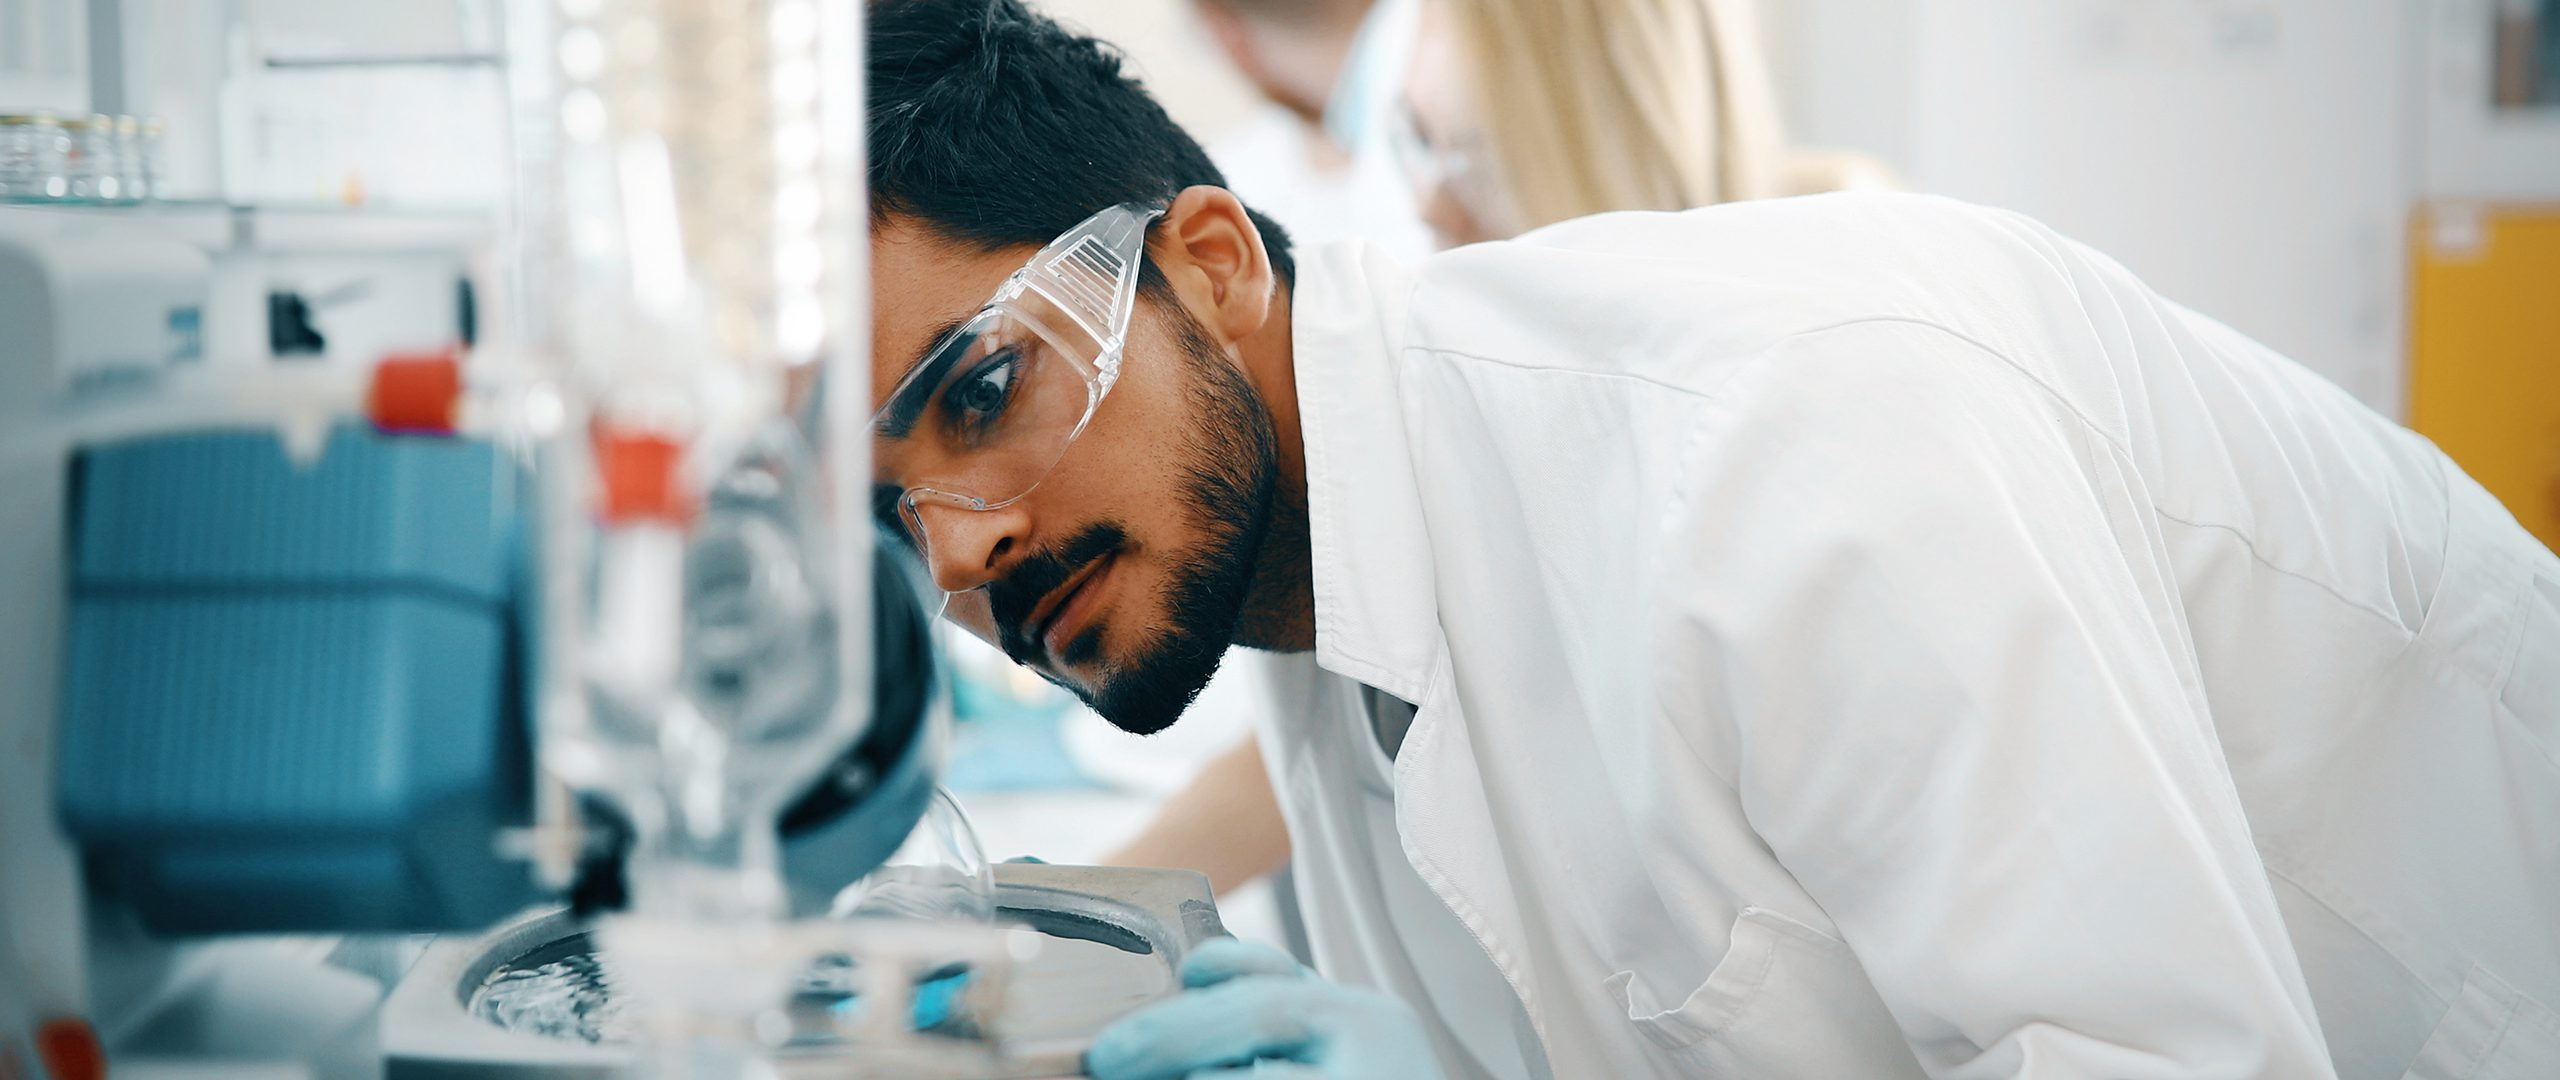 Young students of chemistry working together in laboratory